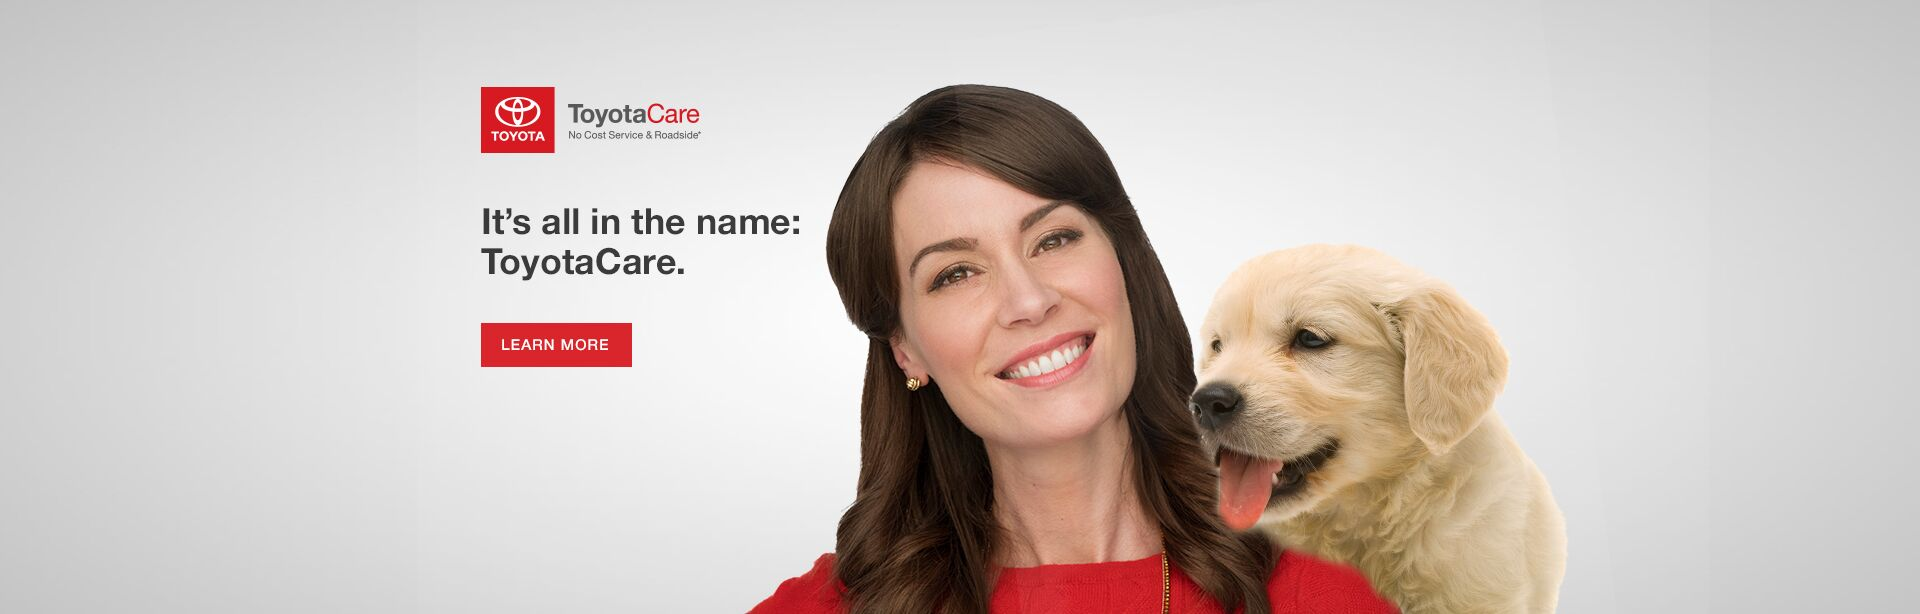 It's all in the name: ToyotaCare